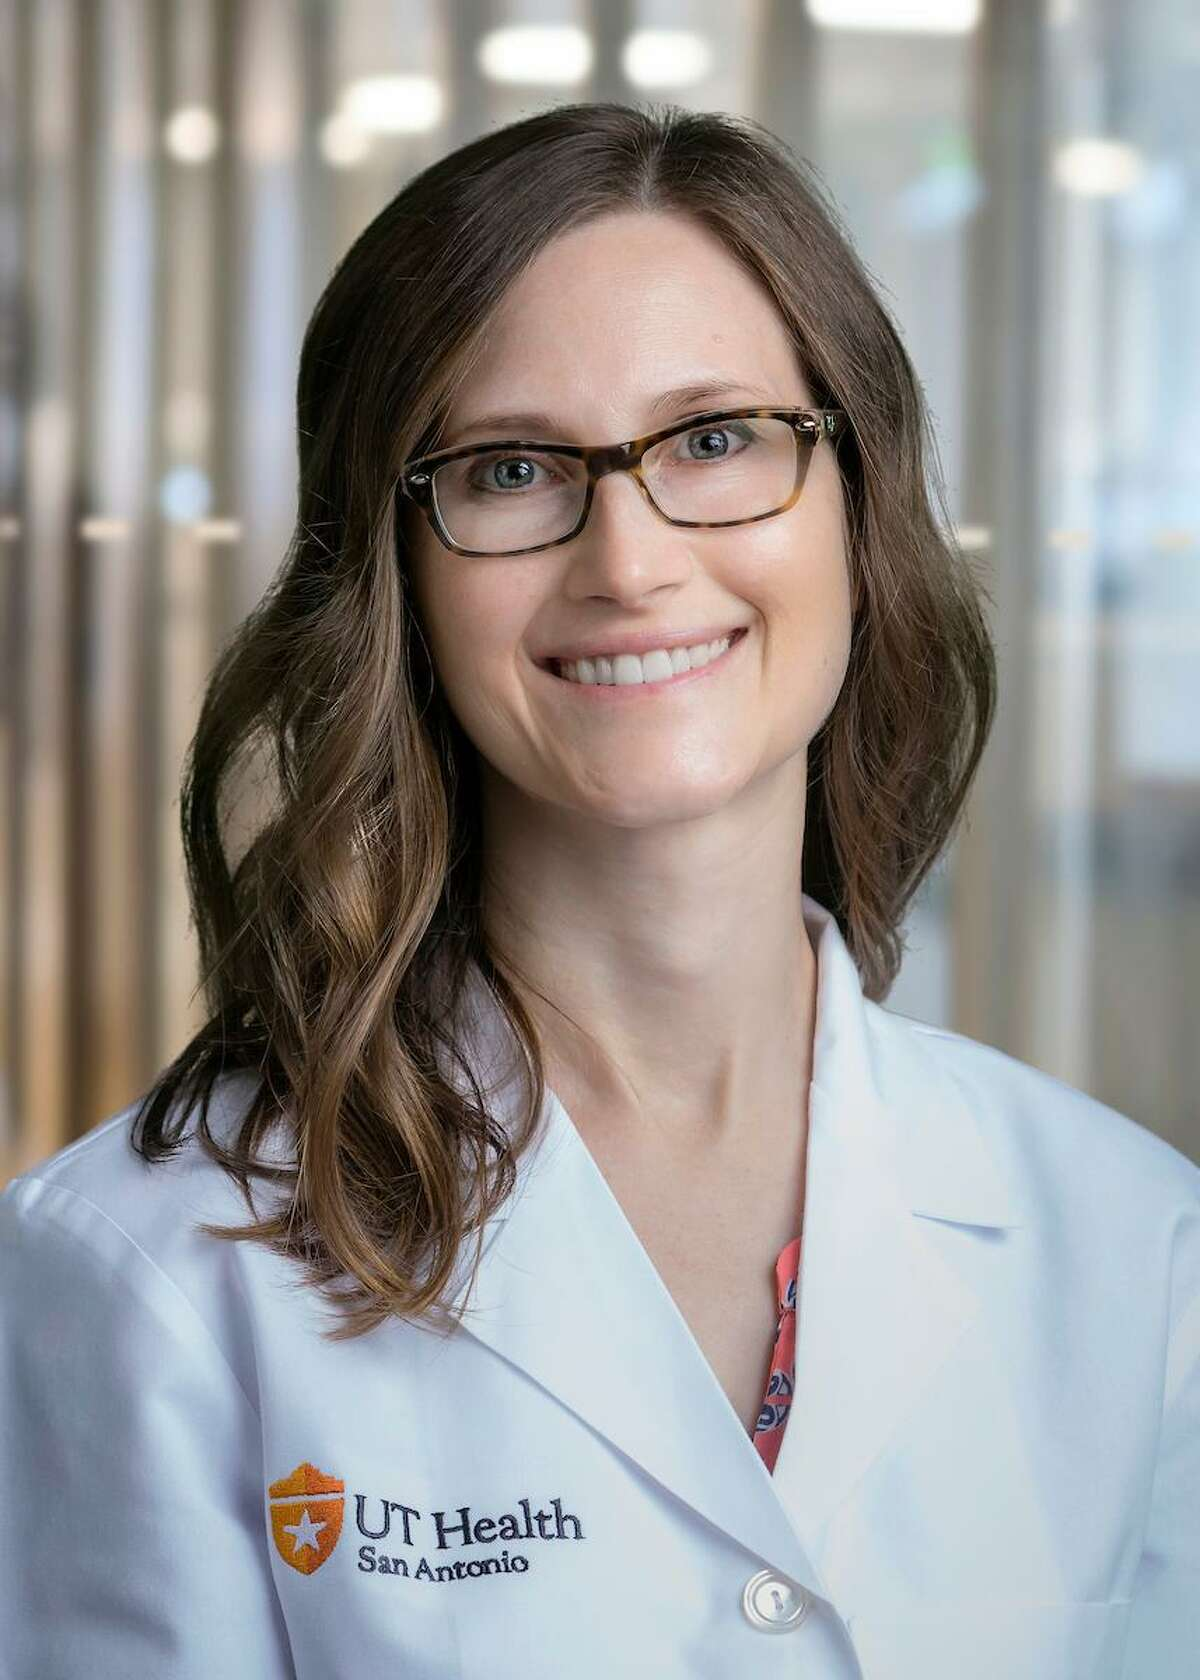 Miranda Orr is on the faculty of the Barshop Institute for Longevity and Aging Studies and is a research health scientist with the South Texas Veterans Health Care System. She's the leade author of a study published last month that could open a new pathway to fighting Alzheimer's disease.